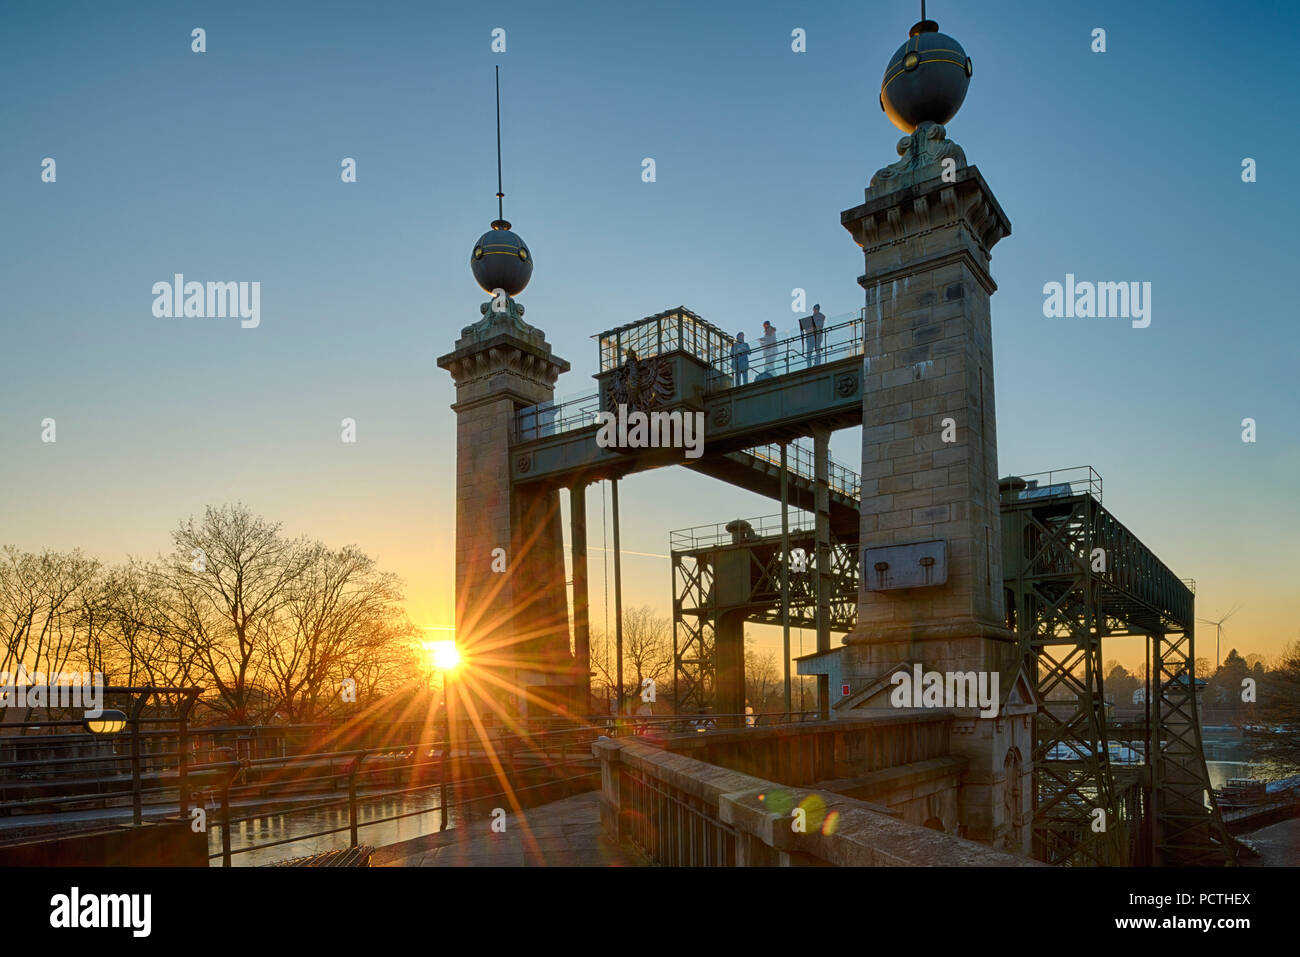 LWL - Industrial Museum, Henrichenburg boat lift on the Dortmund Ems Canal in sunset, Waltrop - Oberwiese, North Rhine-Westphalia, Germany Stock Photo